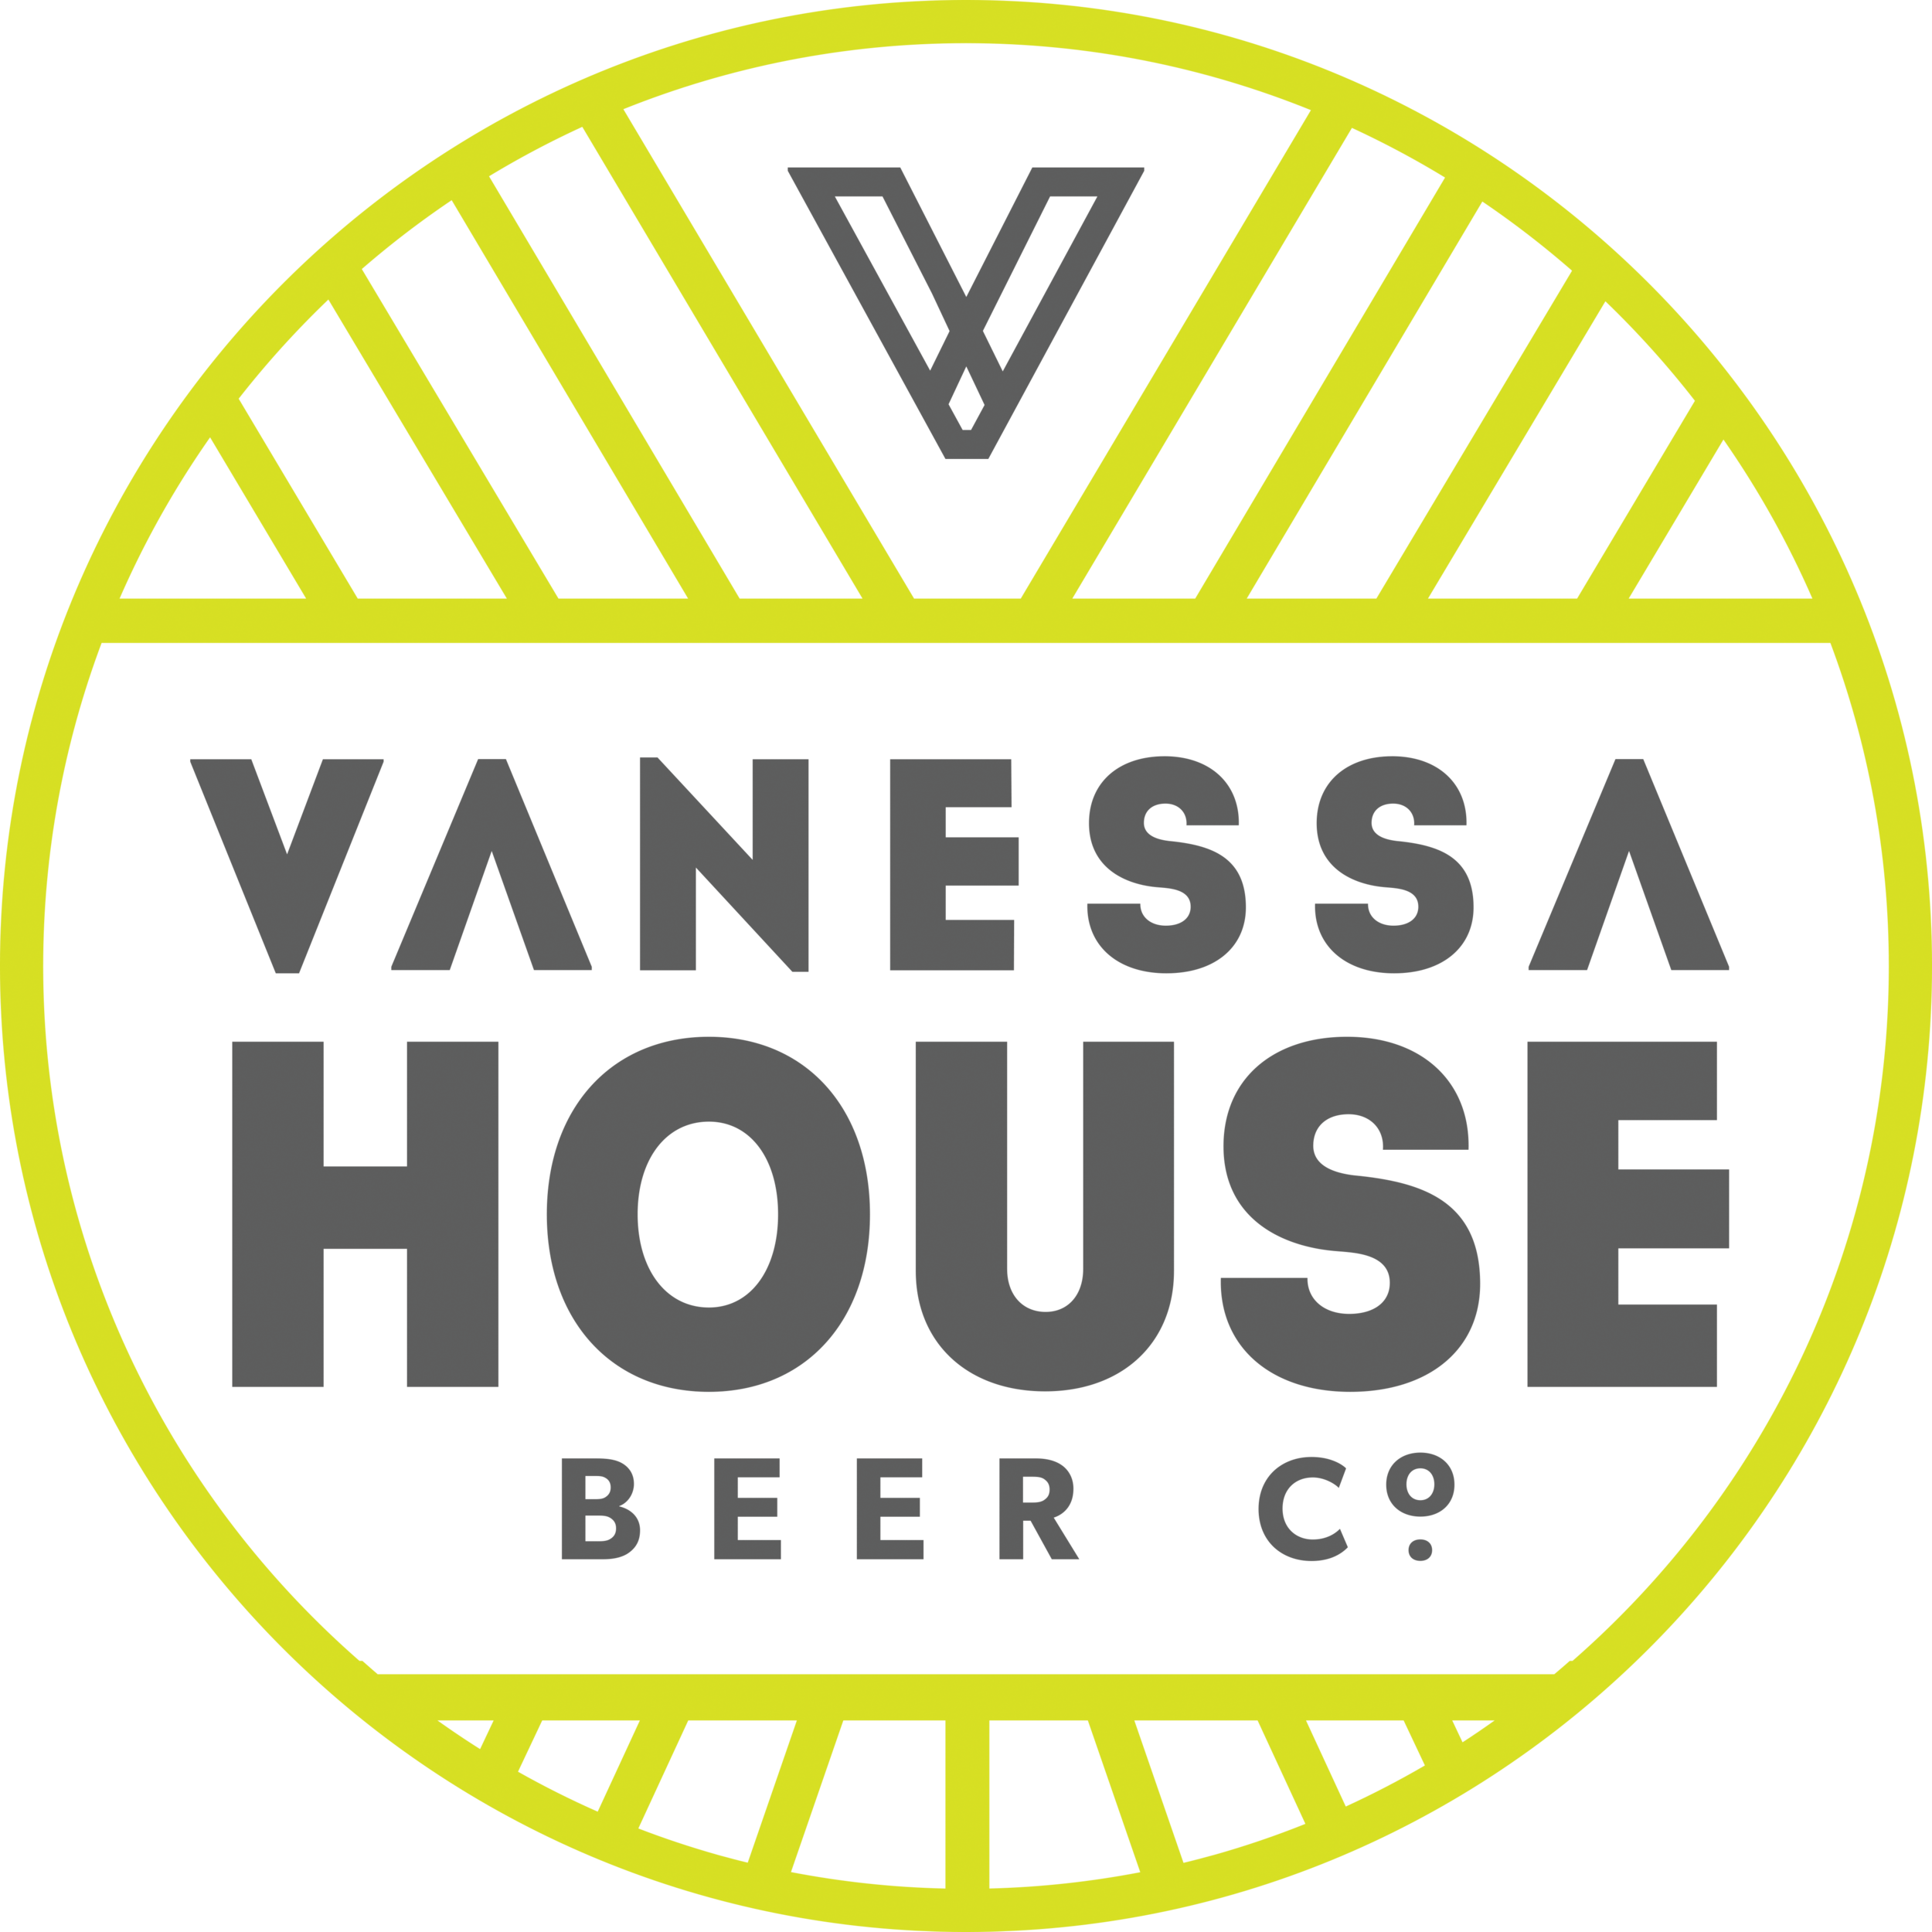 Vanessa House Beer Co. - 118 NW 8th St.OKC, OK 73102Taproom Hours:Sun 11 am - 6 pmMon 3-10 pmTues 3-10 pmWed 3-10 pmThur 3-10 pmFri 12-11 pmSat 11 am - 11 pm